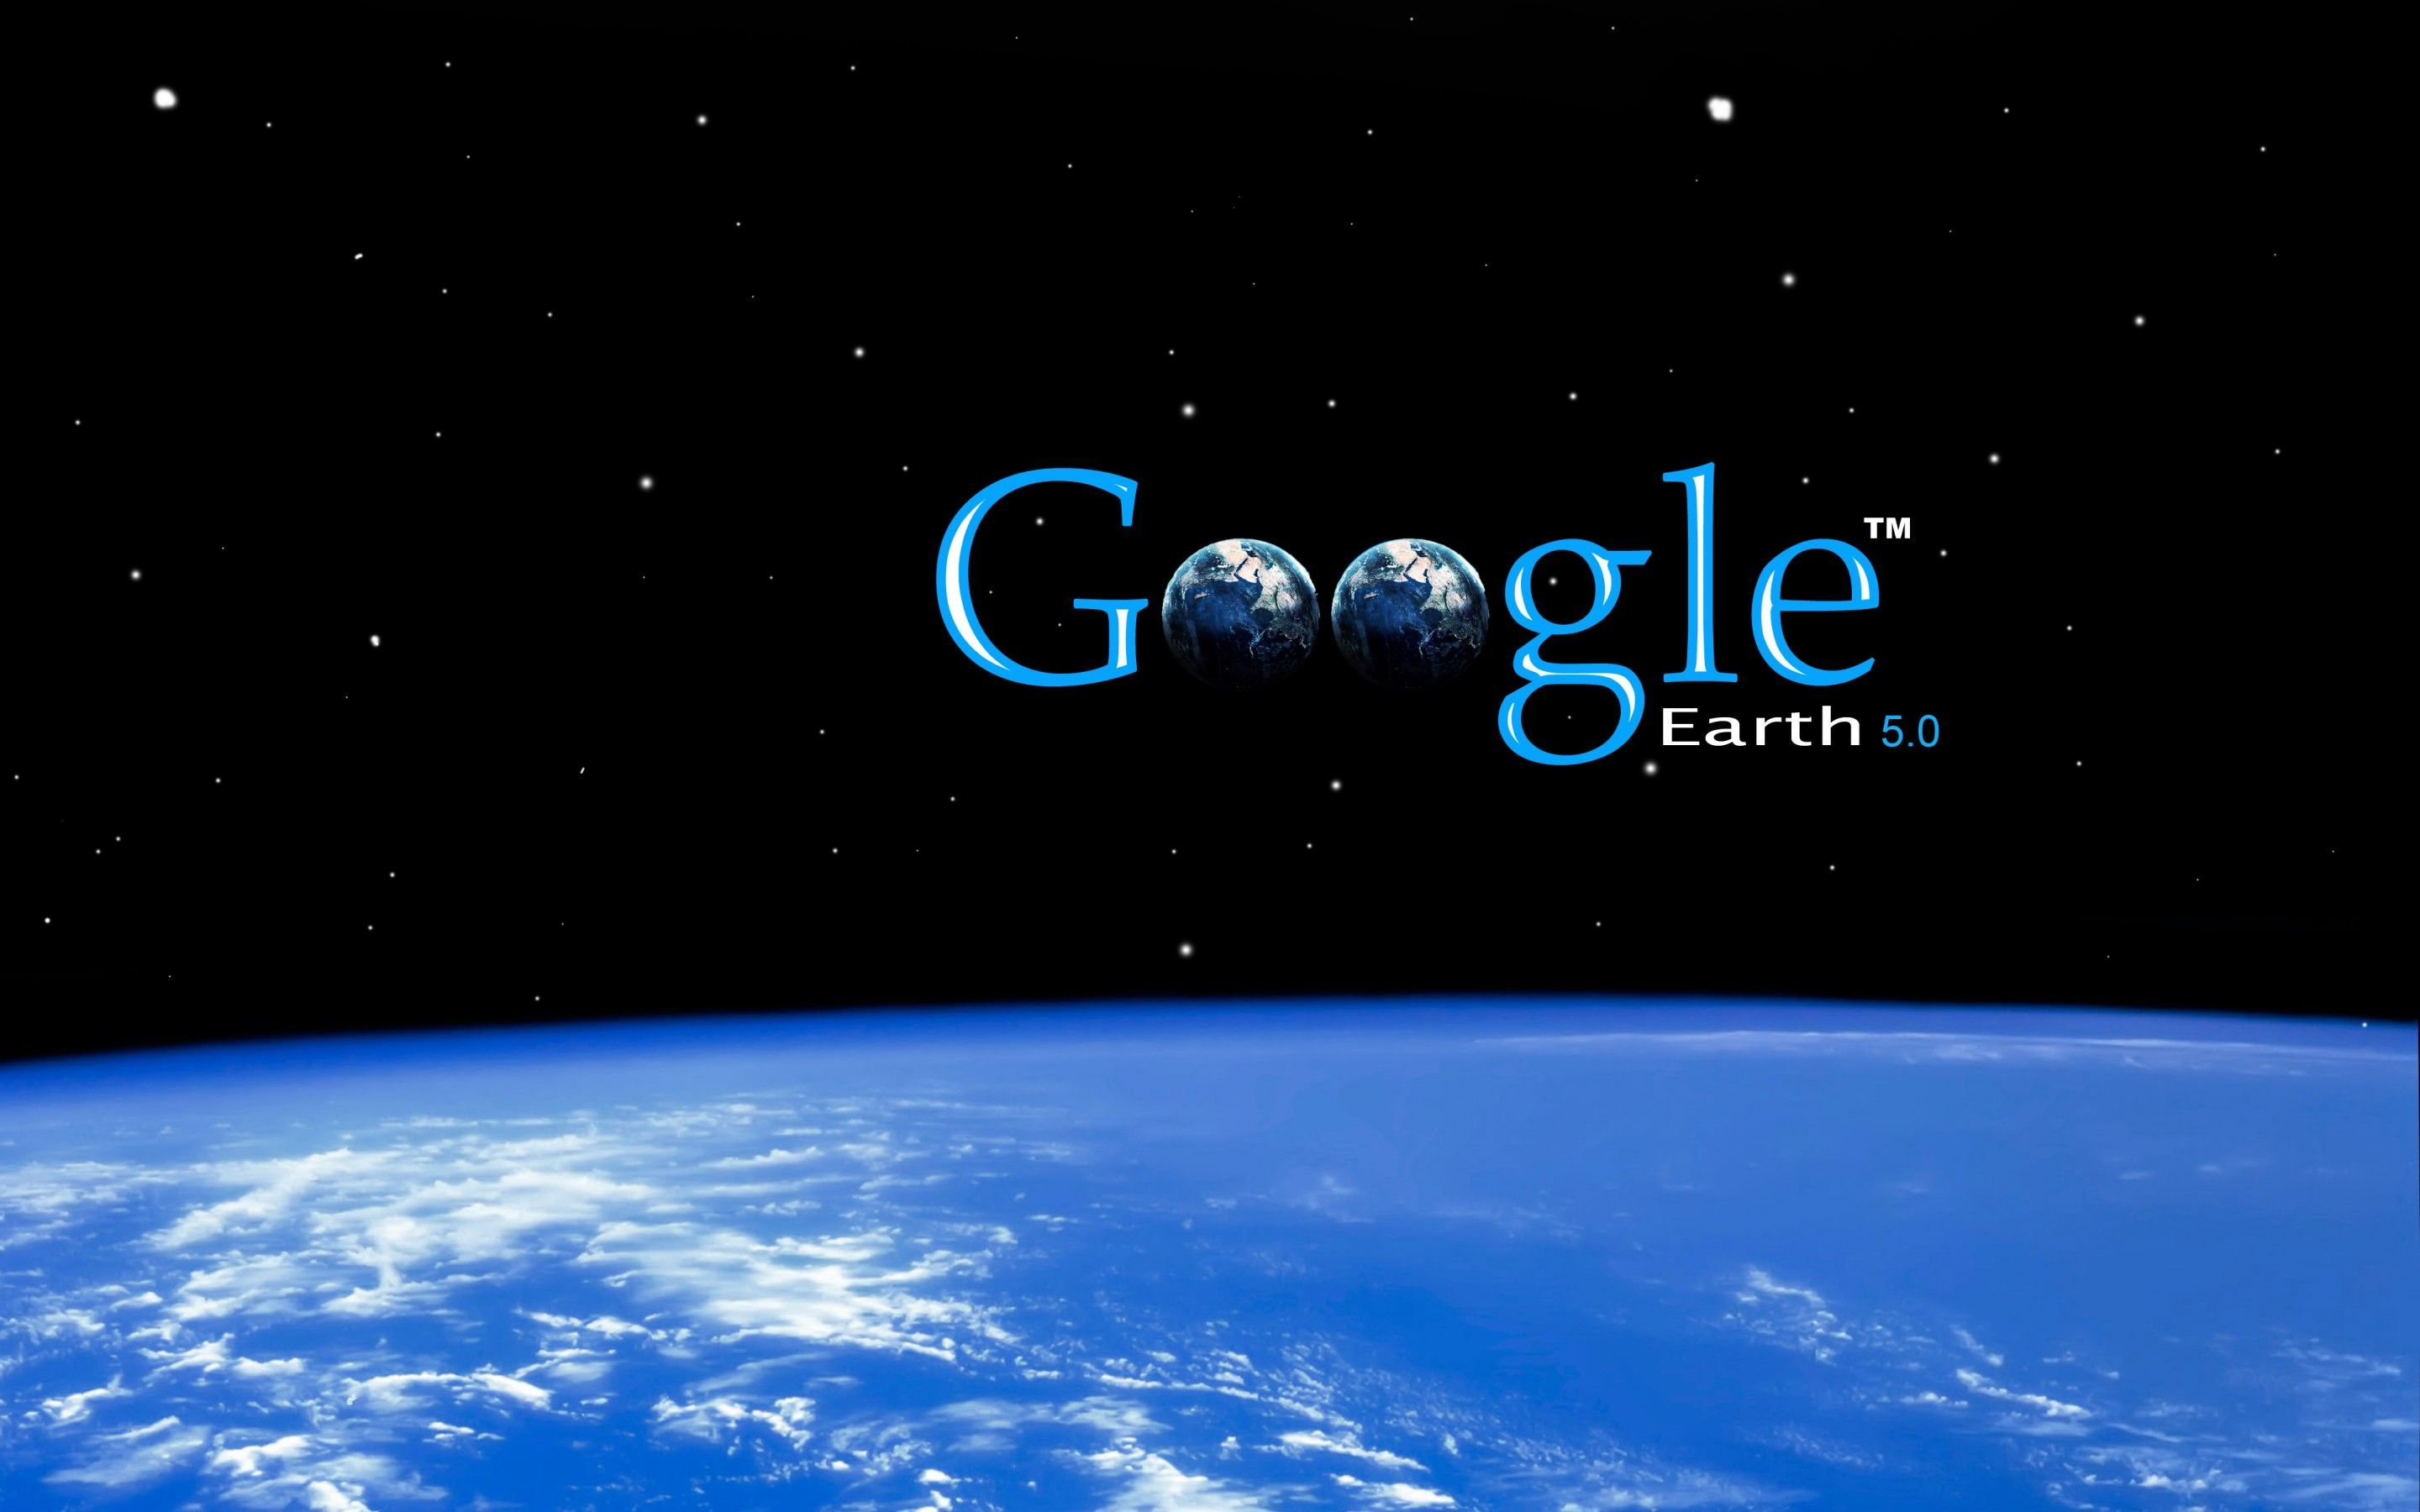 Google HD Wallpaper For Desktop